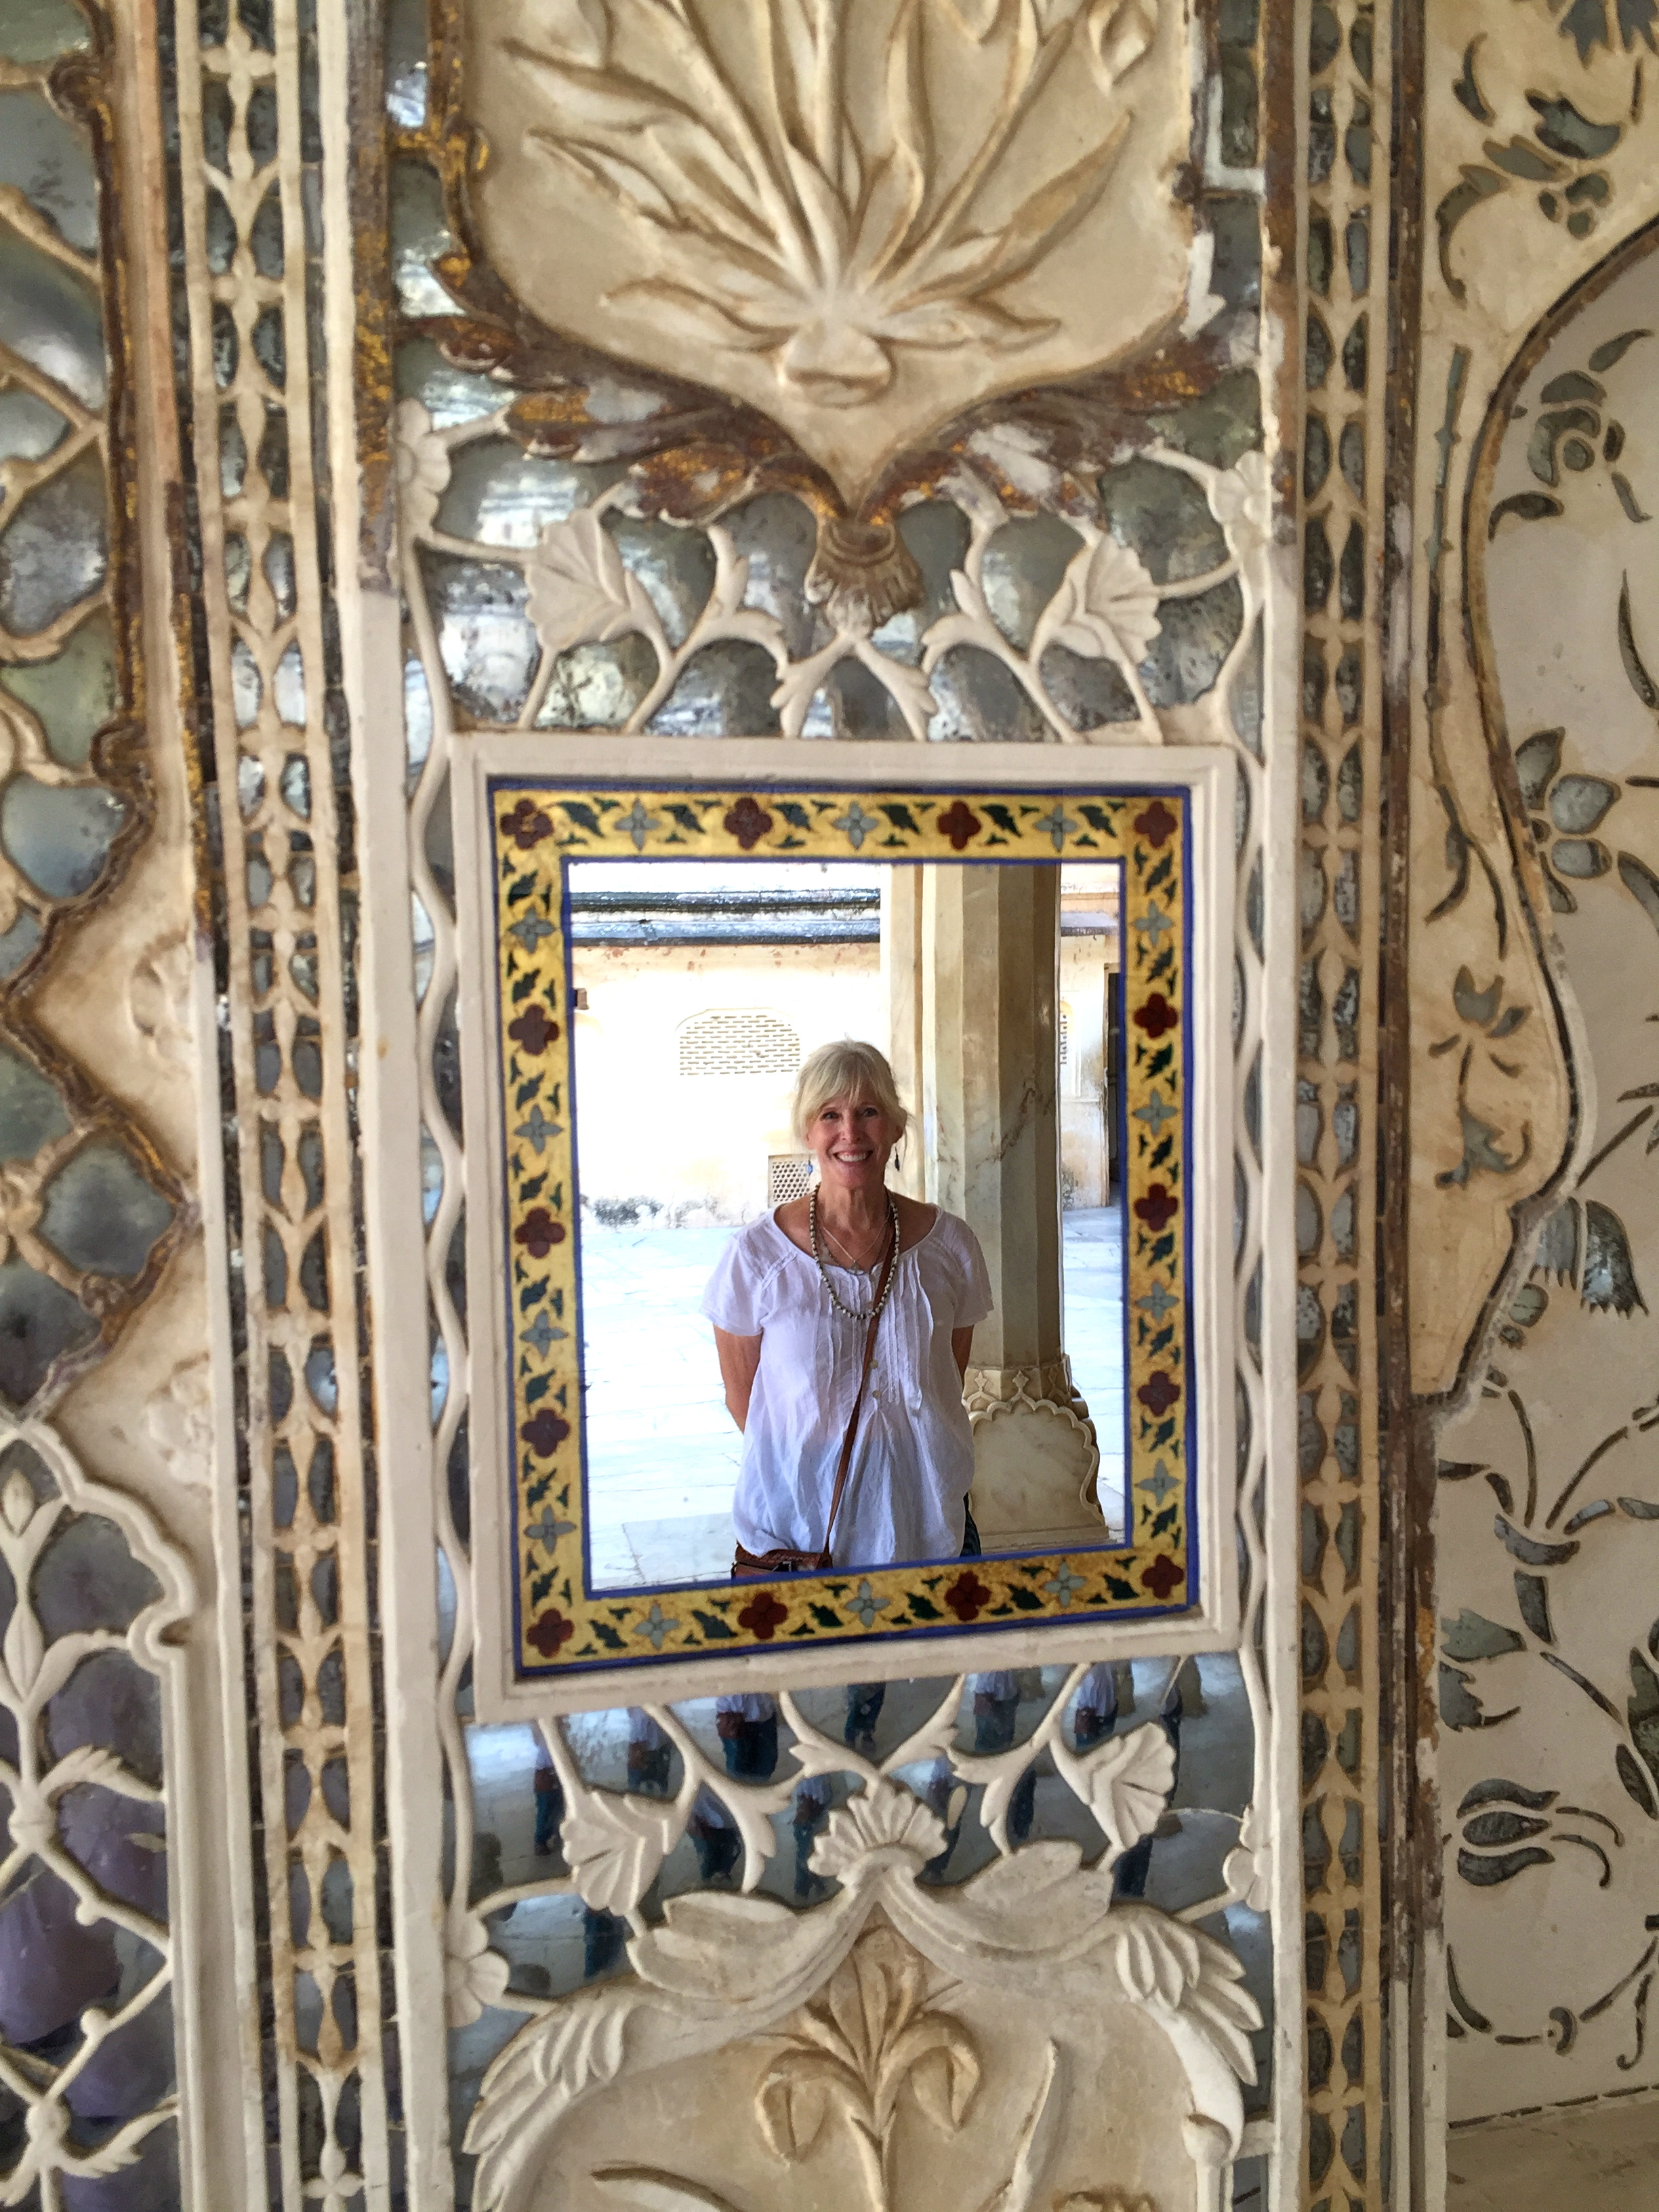 Ornately mirrored walls and ceilings of the Amber Palace, Jaipur invite self-reflection :-)